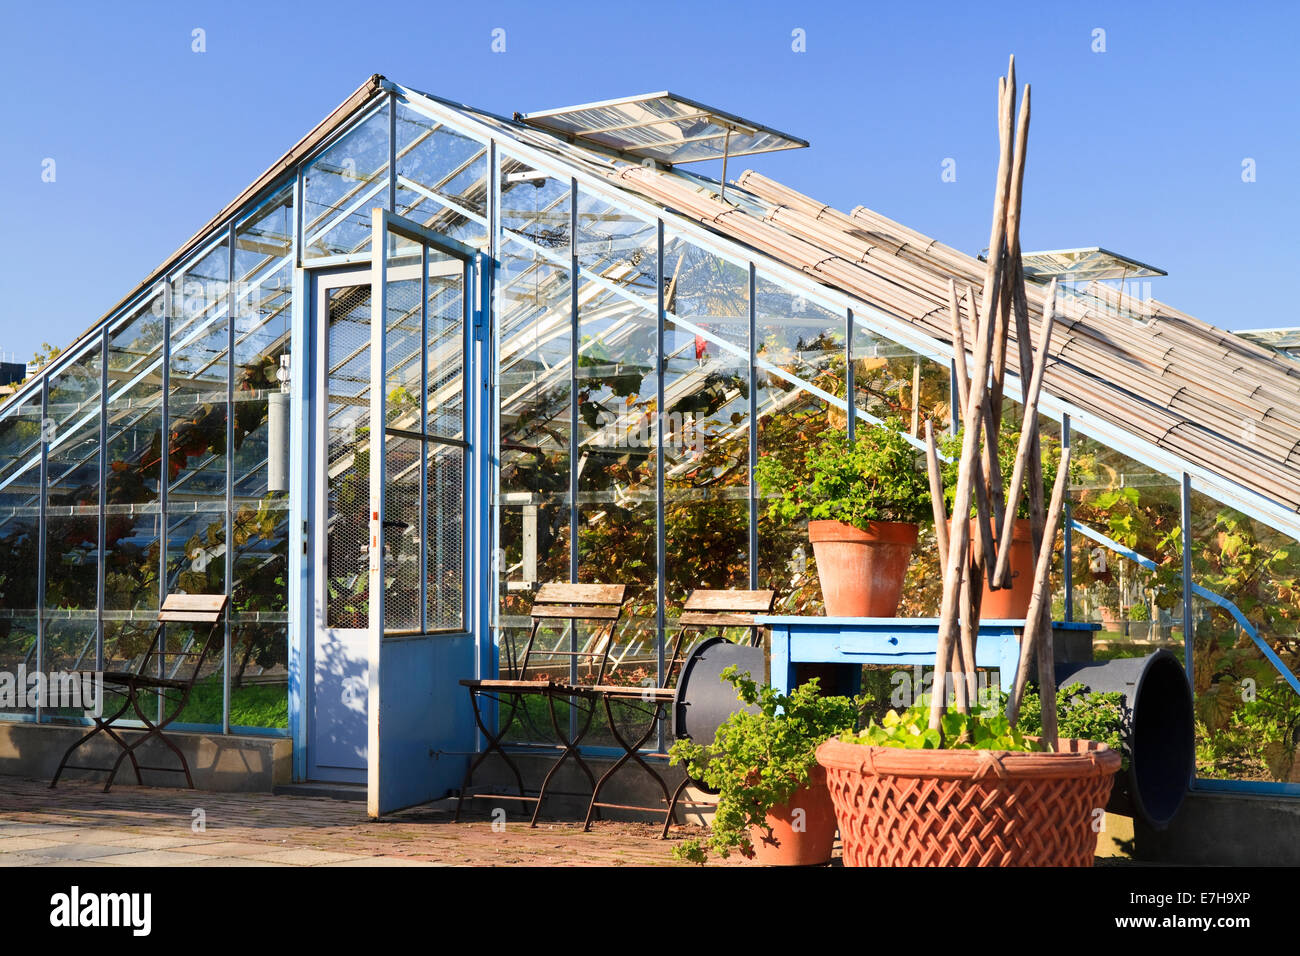 DORDRECHT, THE NETHERLANDS - OCTOBER 23, 2011: Greenhouse used to cultivate vines in the gardens of Villa Augustus - Stock Image